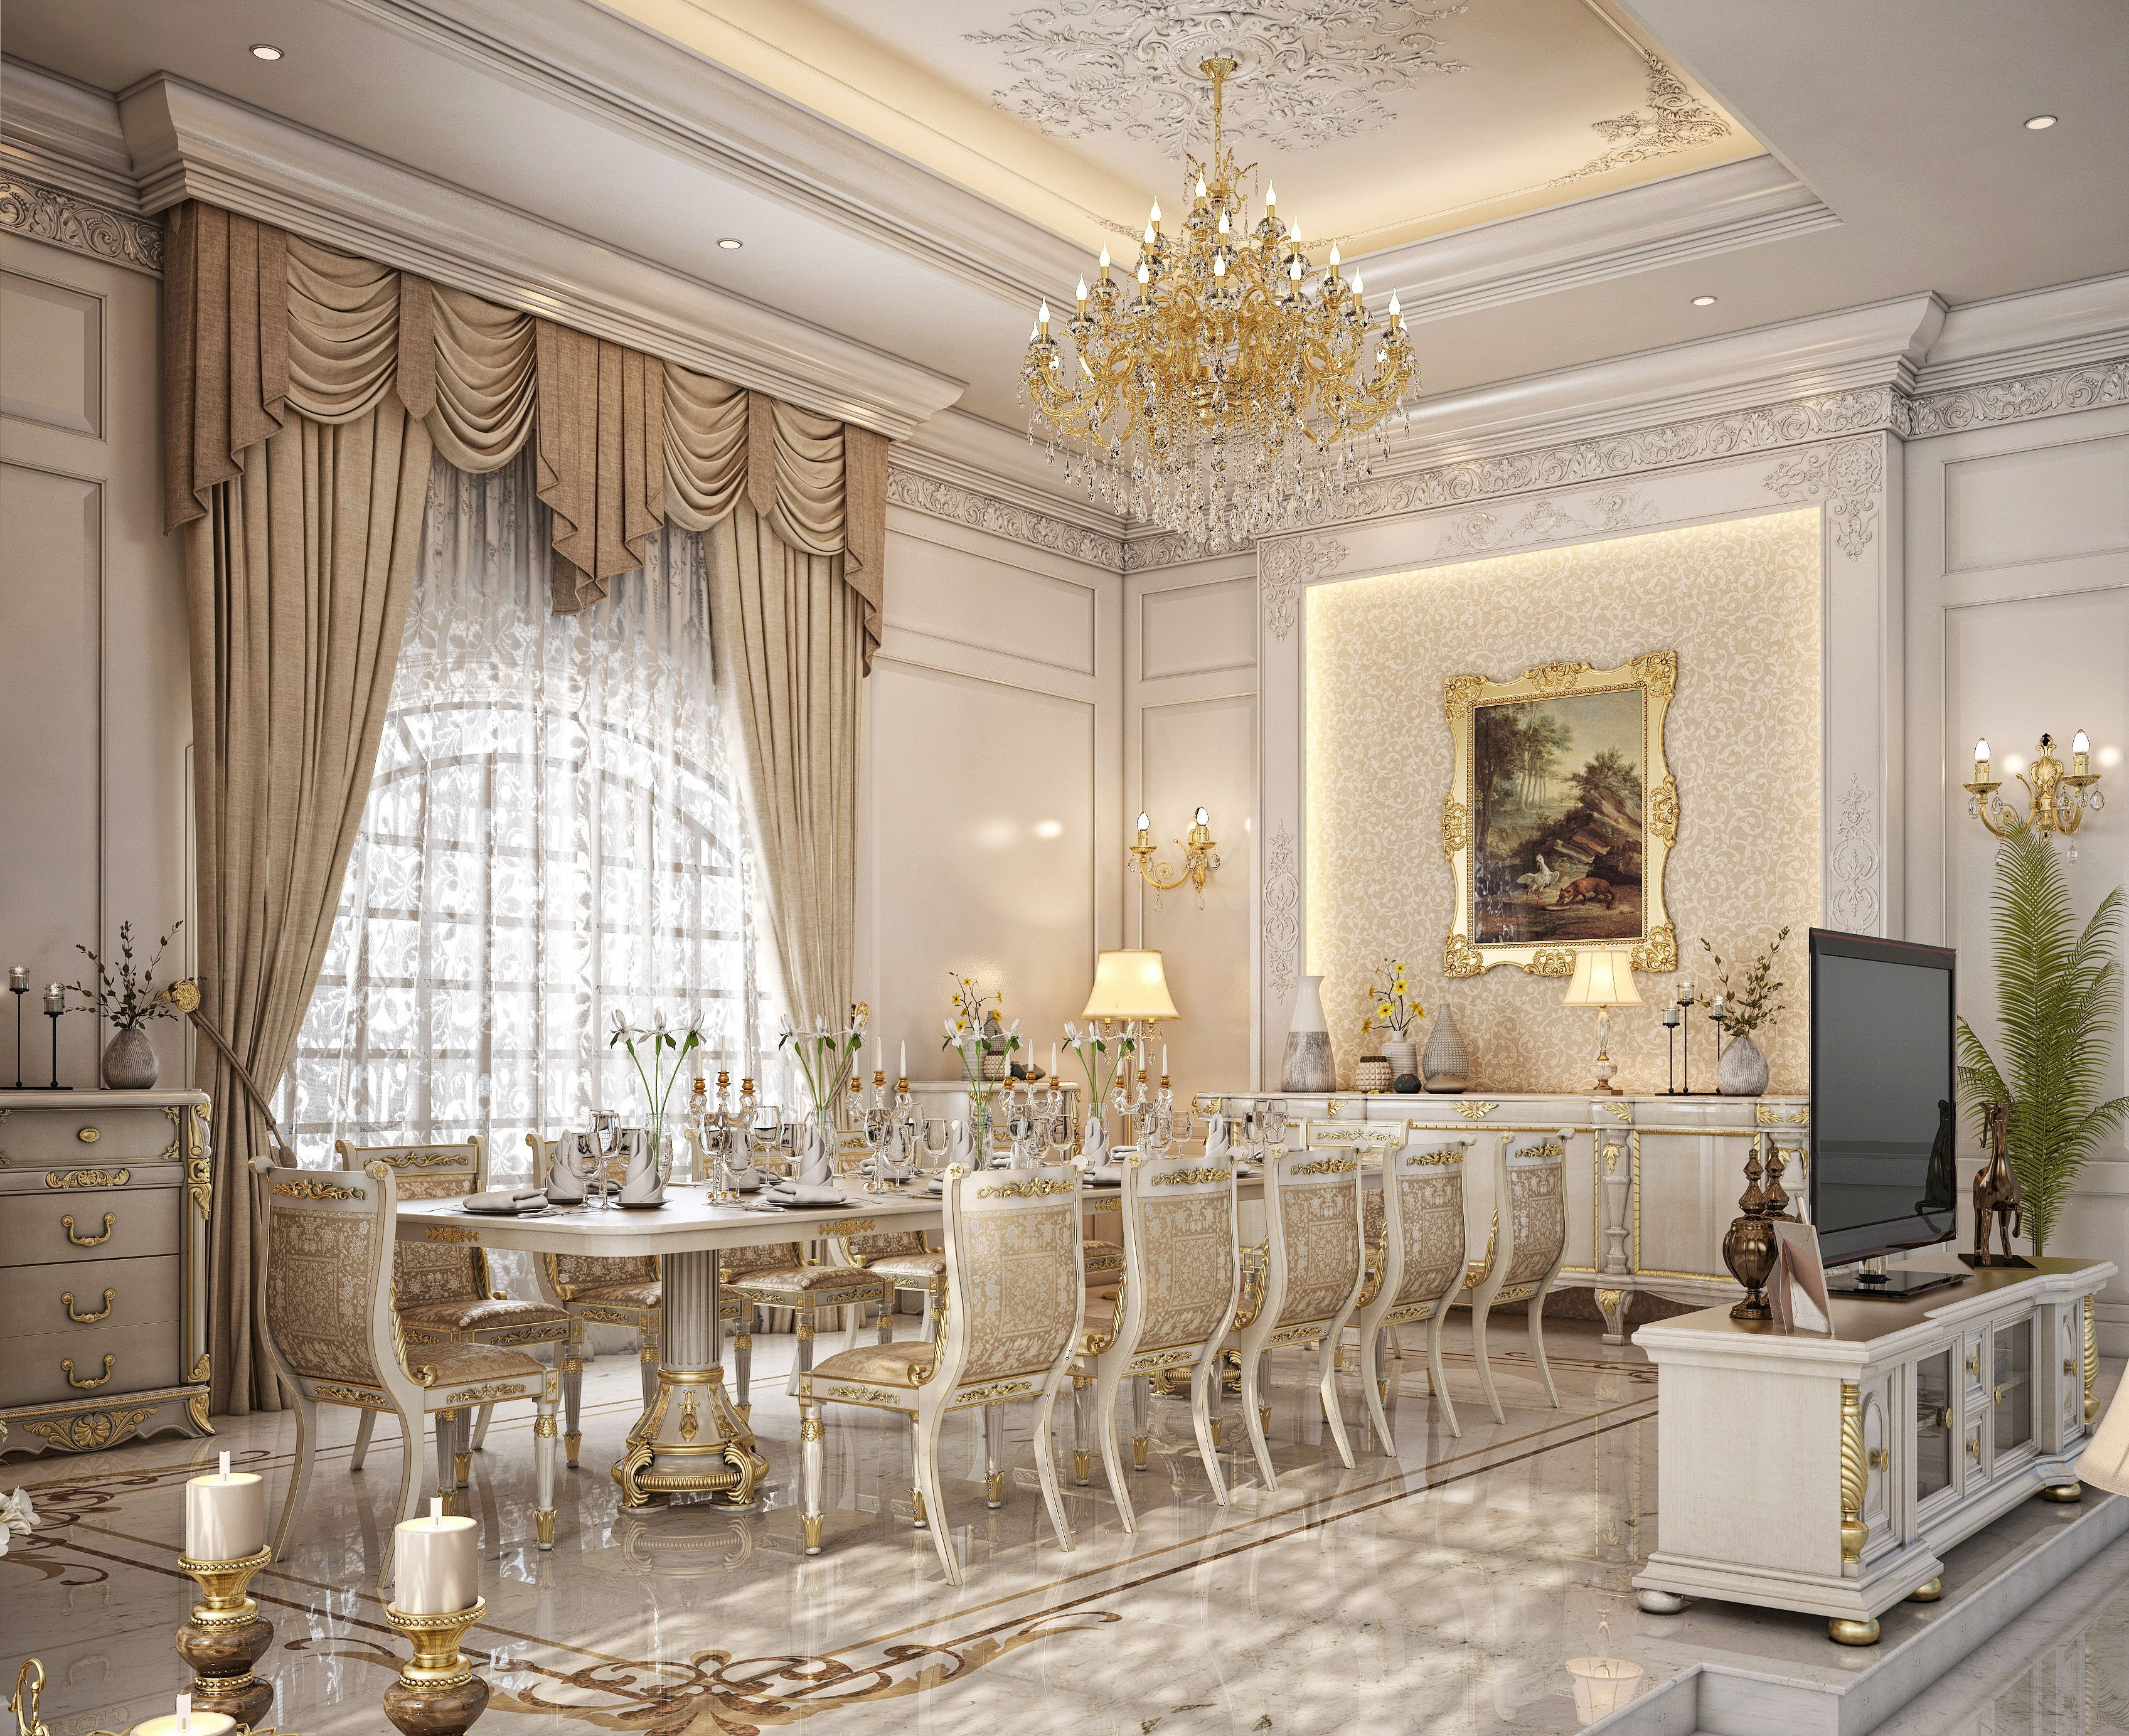 Perfect Dining U0026 Living Room Design For A Private Palace At Doha, Qatar